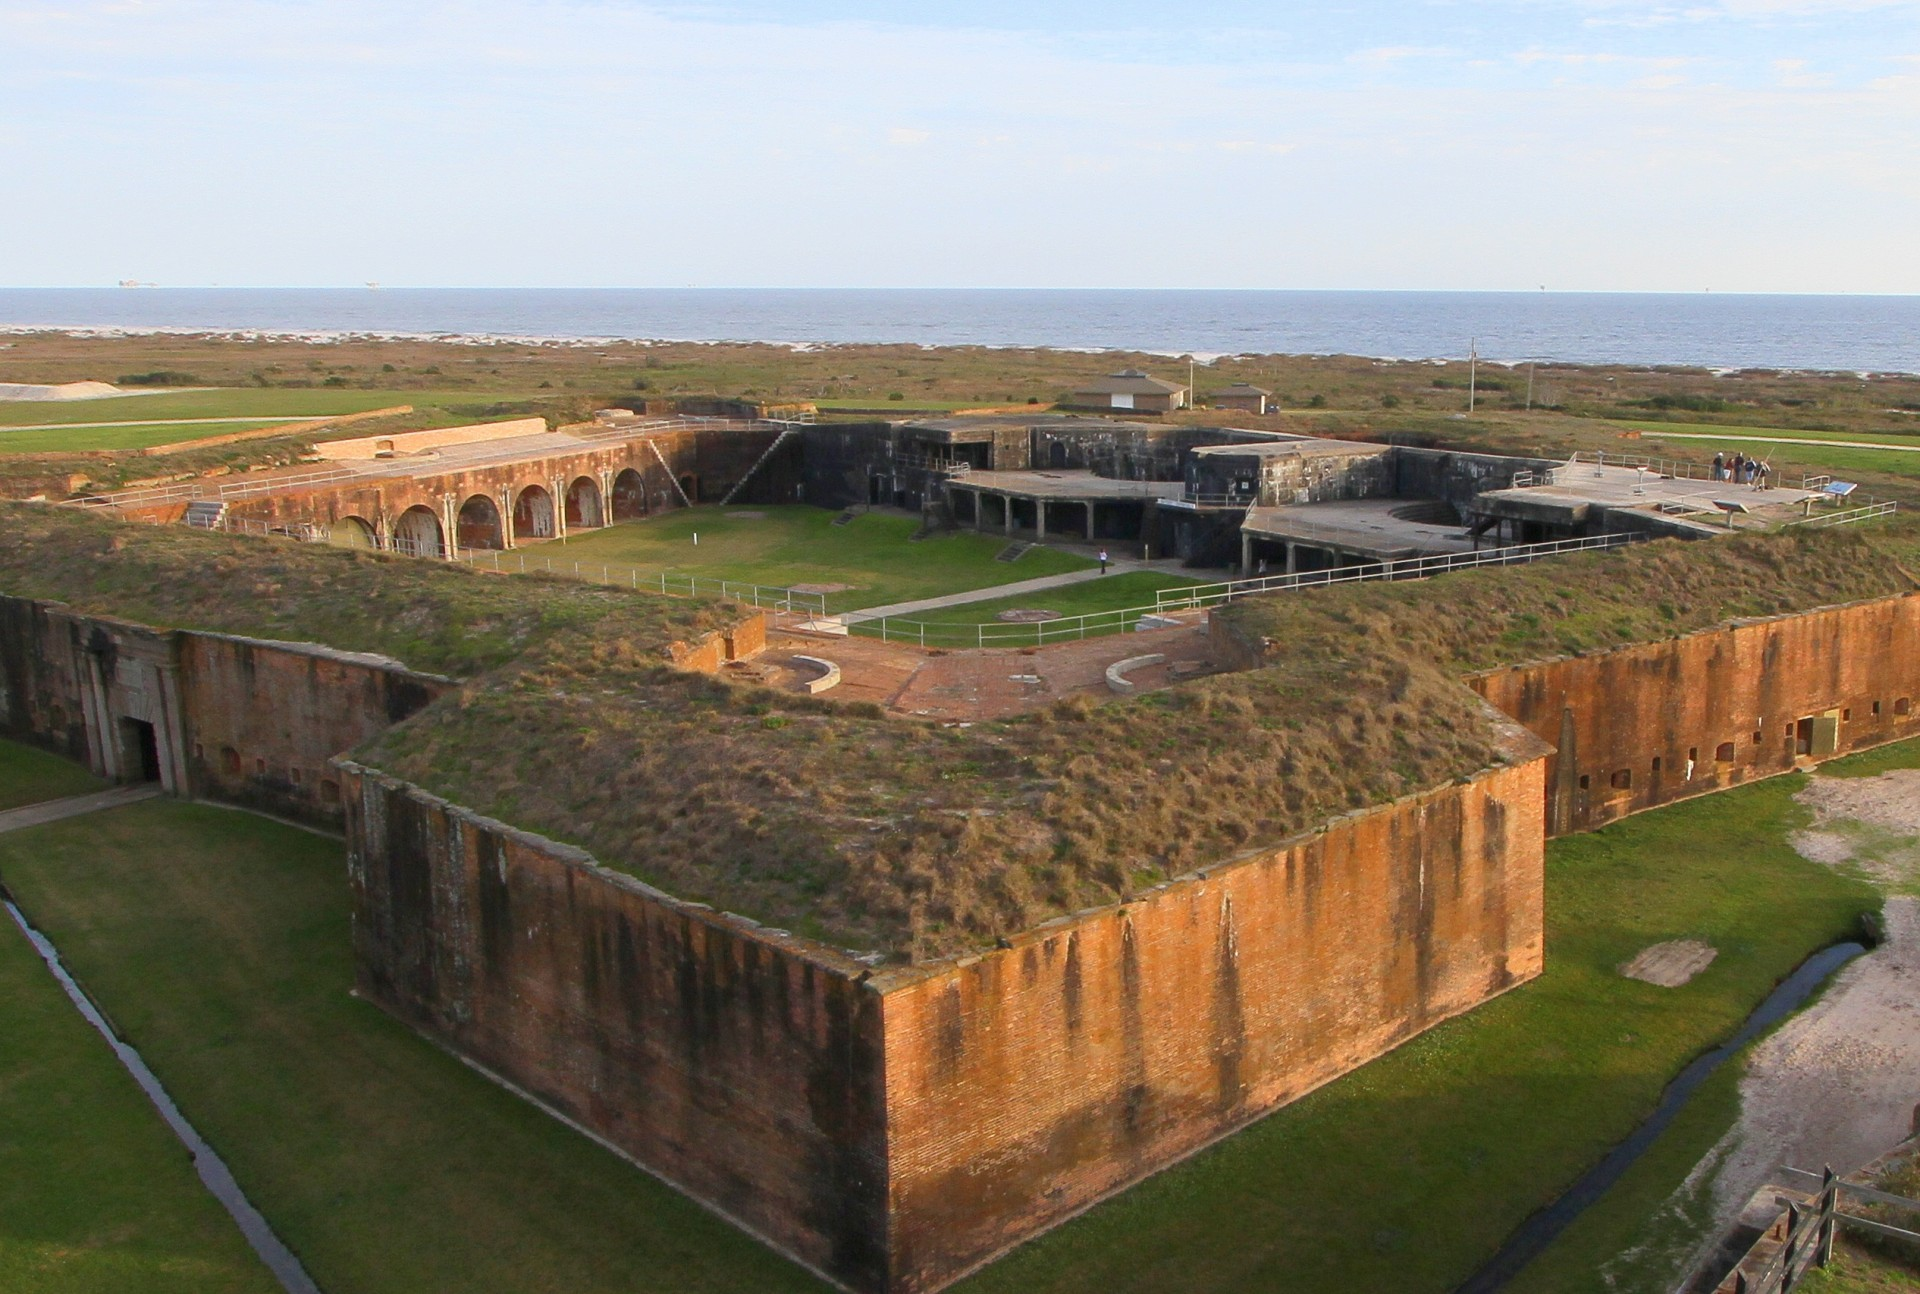 fort gaines latino personals 100% free fort gaines personals & dating signup free & meet 1000s of sexy fort gaines, georgia singles on bookofmatchescom.